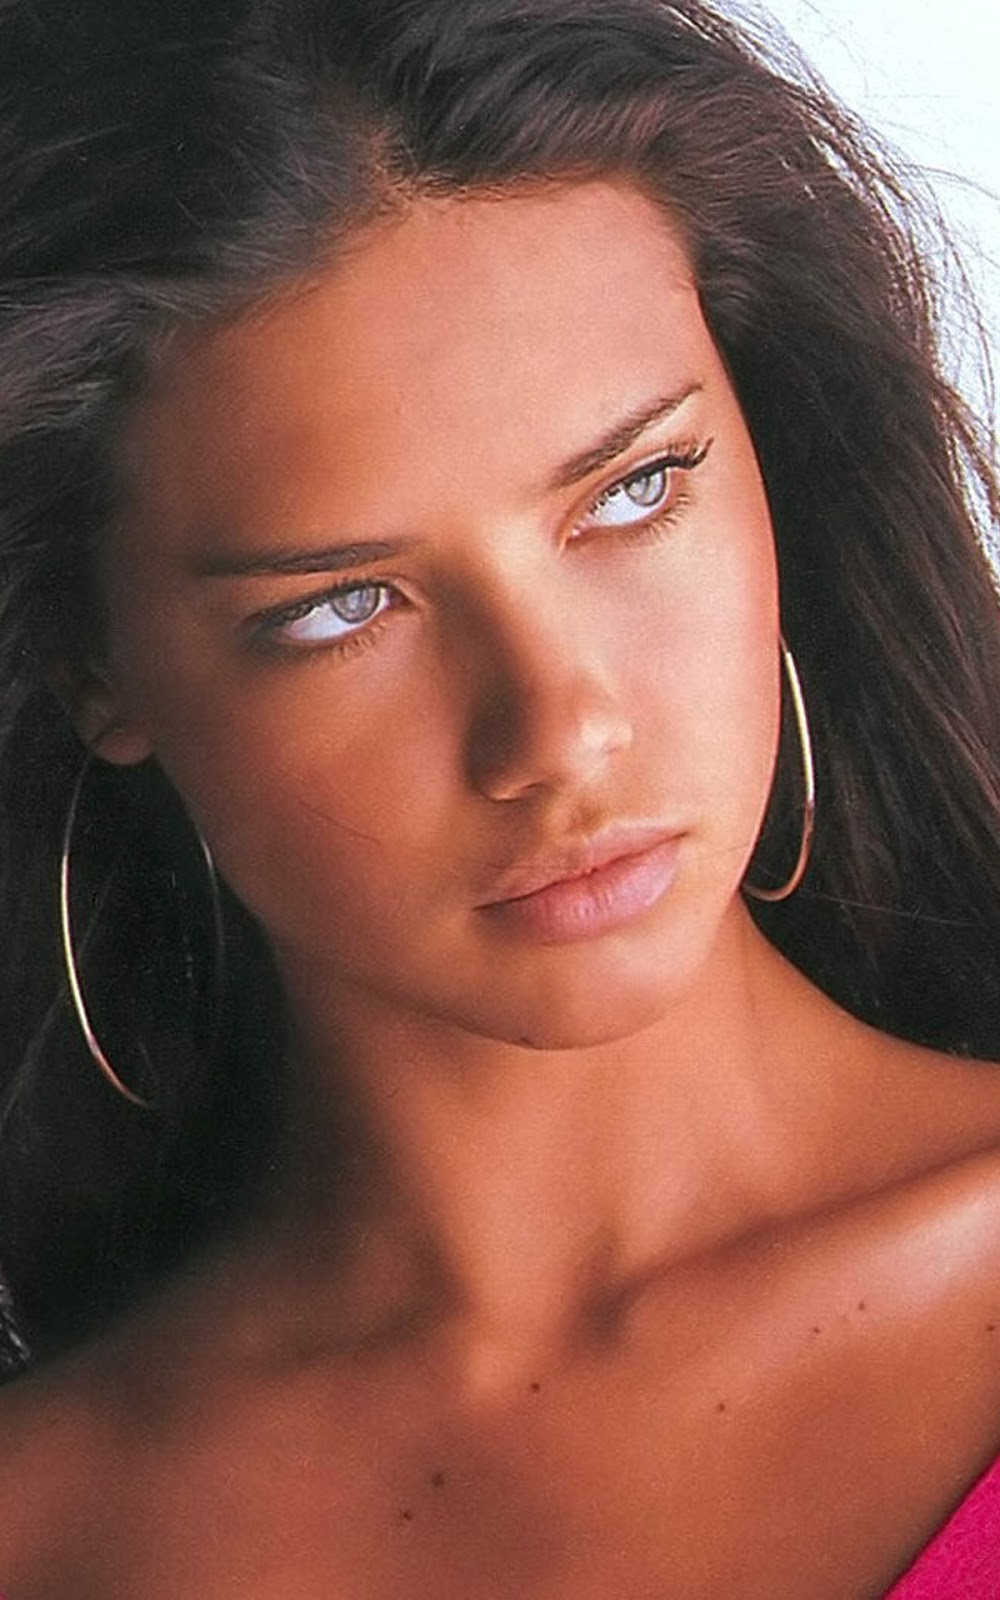 adriana lima, glamour, HD, hot, model, Sensual, sexy, supermodel, top model, victoria's secret, vogue, wallpaper